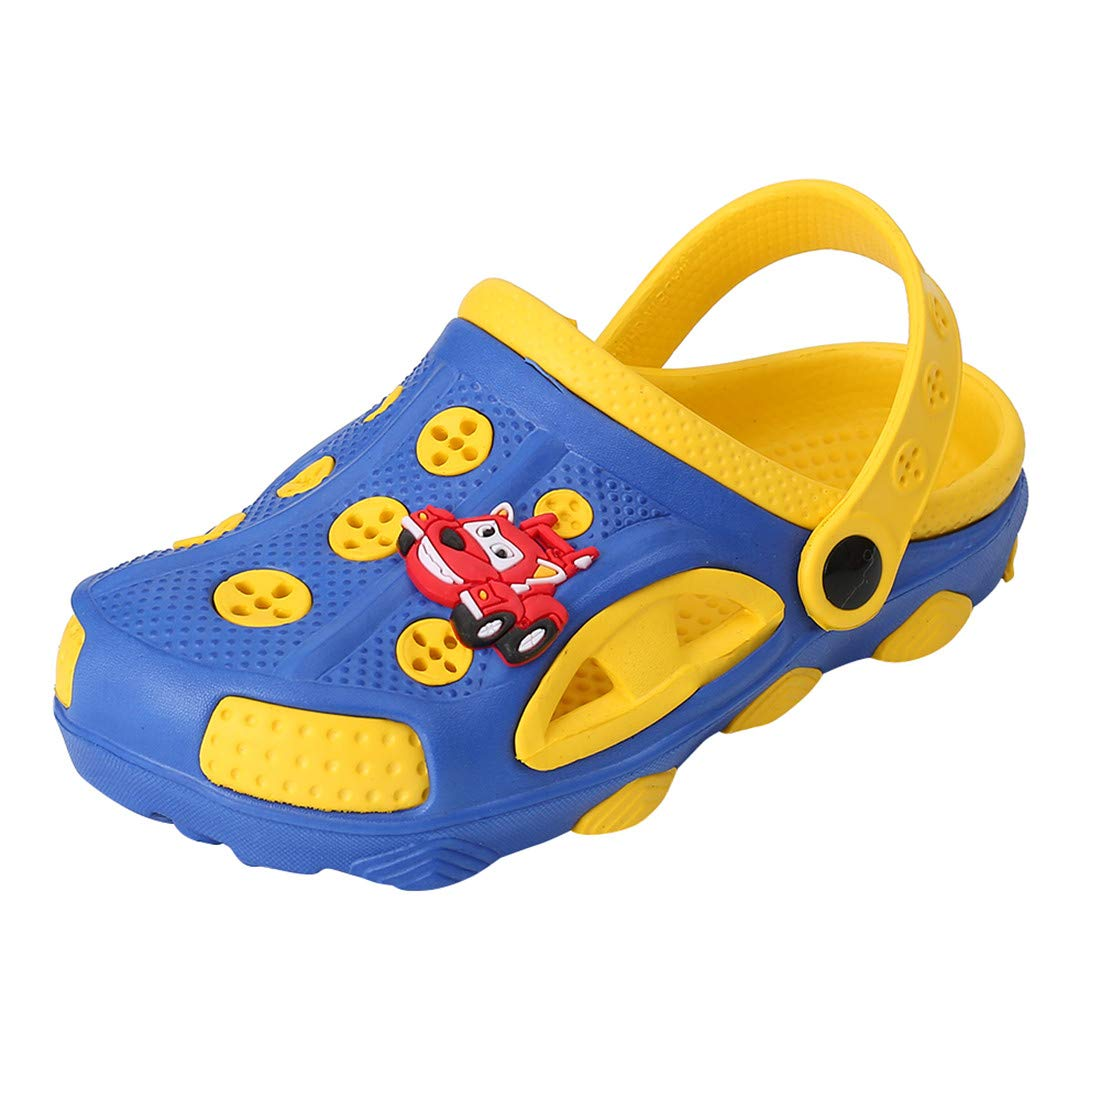 Fashion-zone Toddlers Cartoon Slides Sandals-Lightweight Garden Clogs Beach Sandals for Toddler Boys Girls (7.5 M US Toddler, Blue)